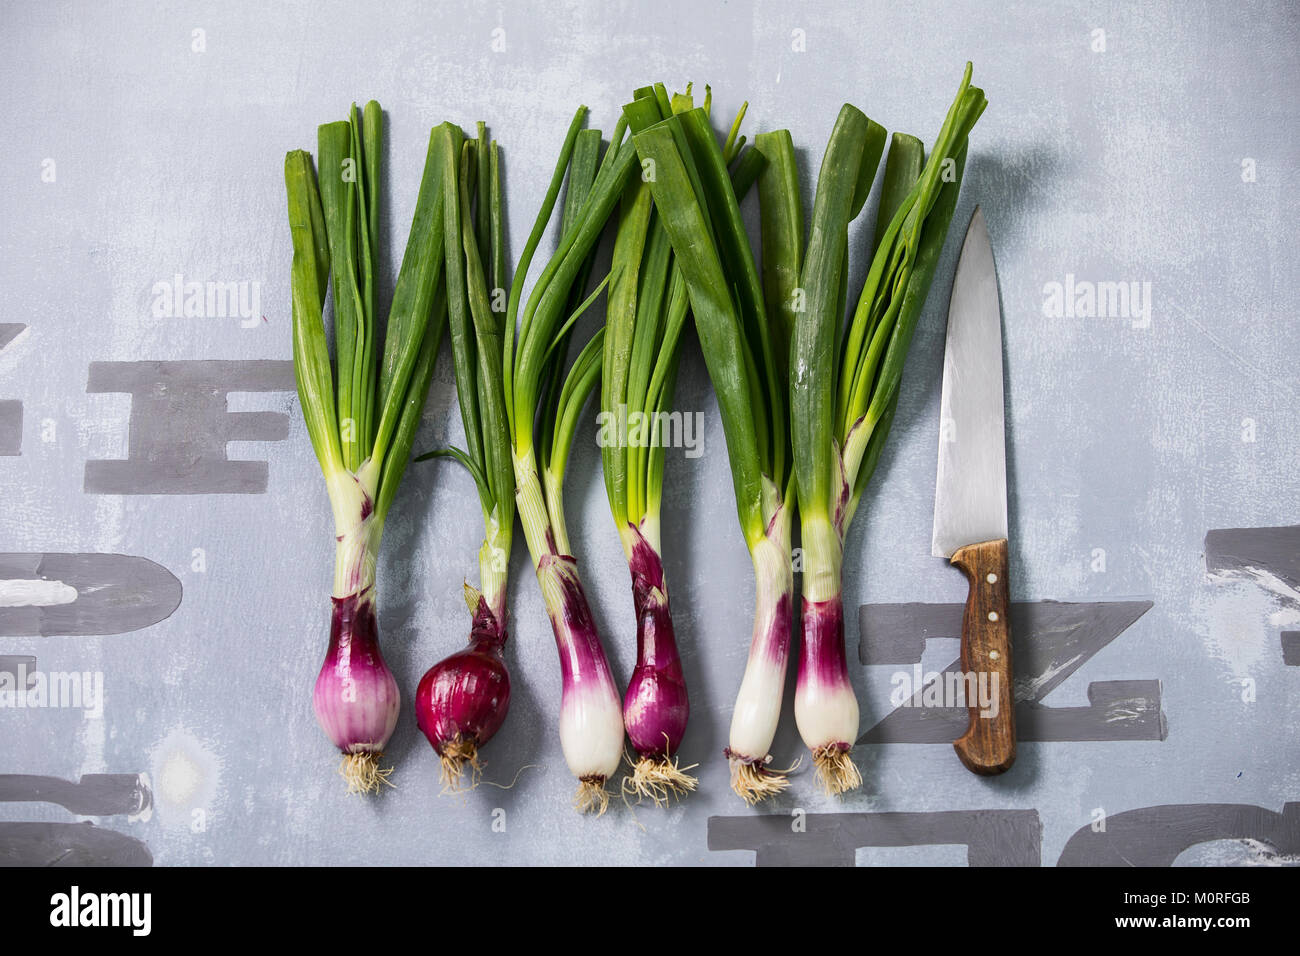 Rw of spring onions and kitchen knife - Stock Image